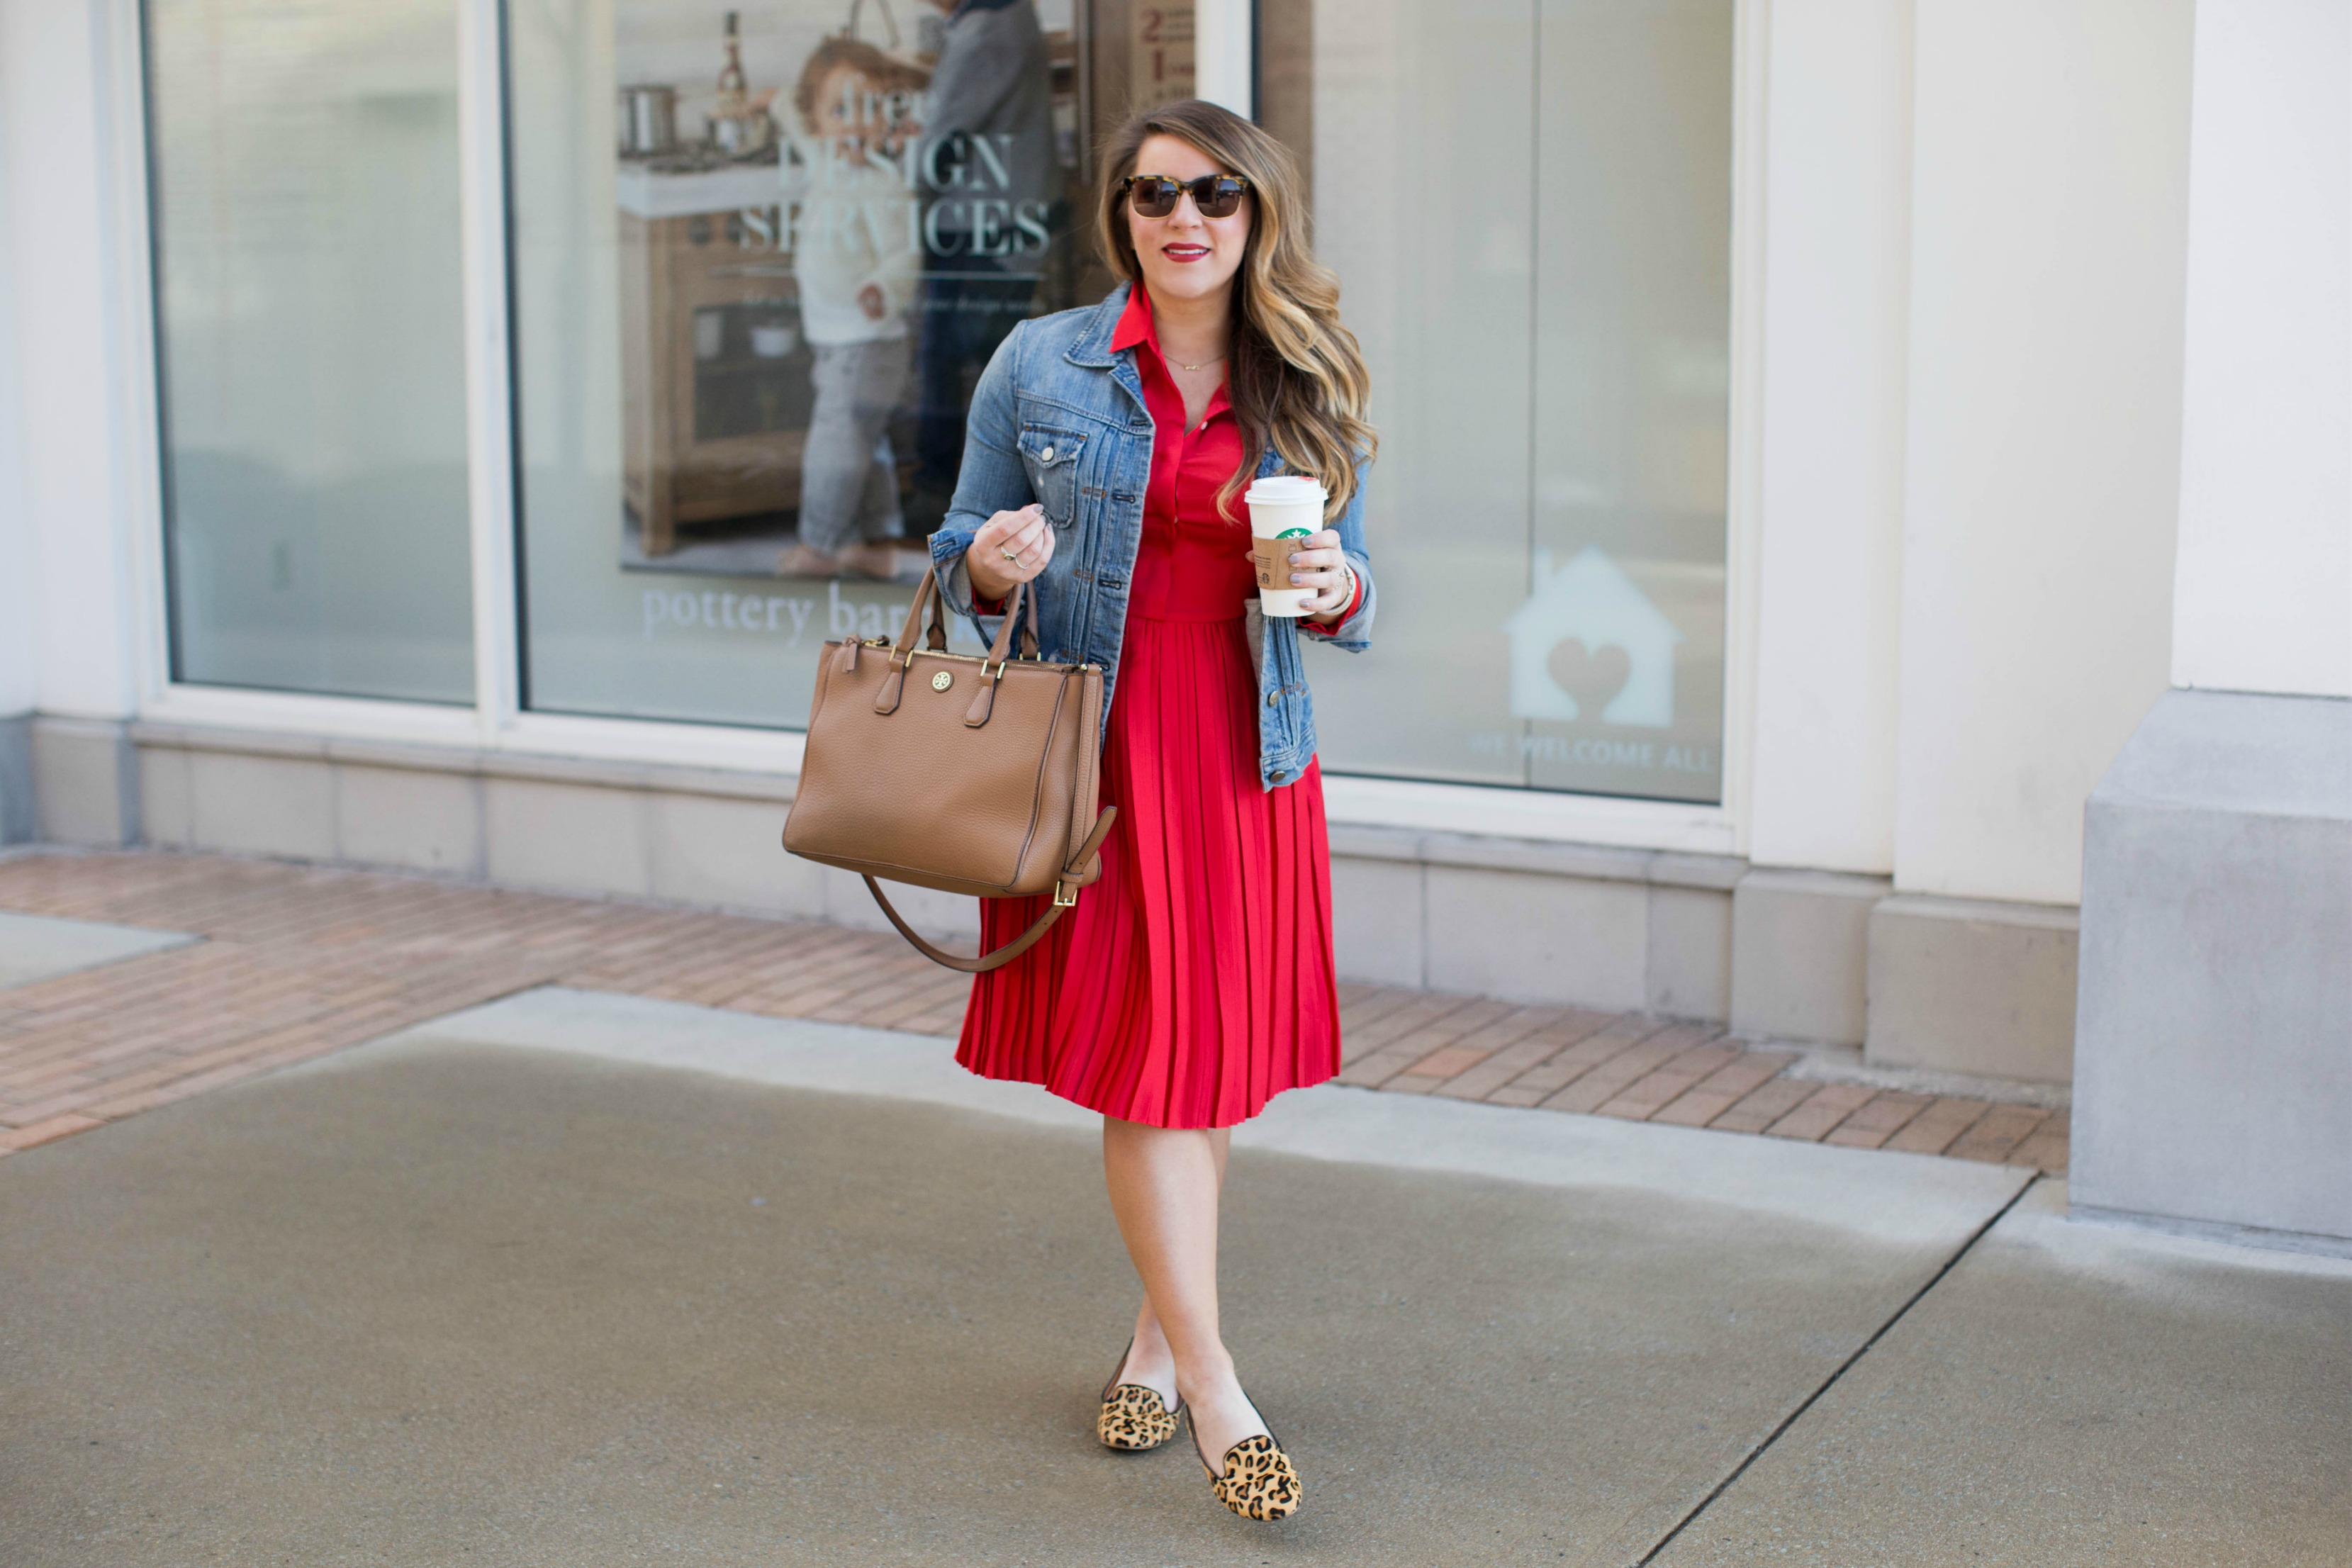 Versatile Red Dress for Errands or the Office | coffeebeansandbobbypins.com